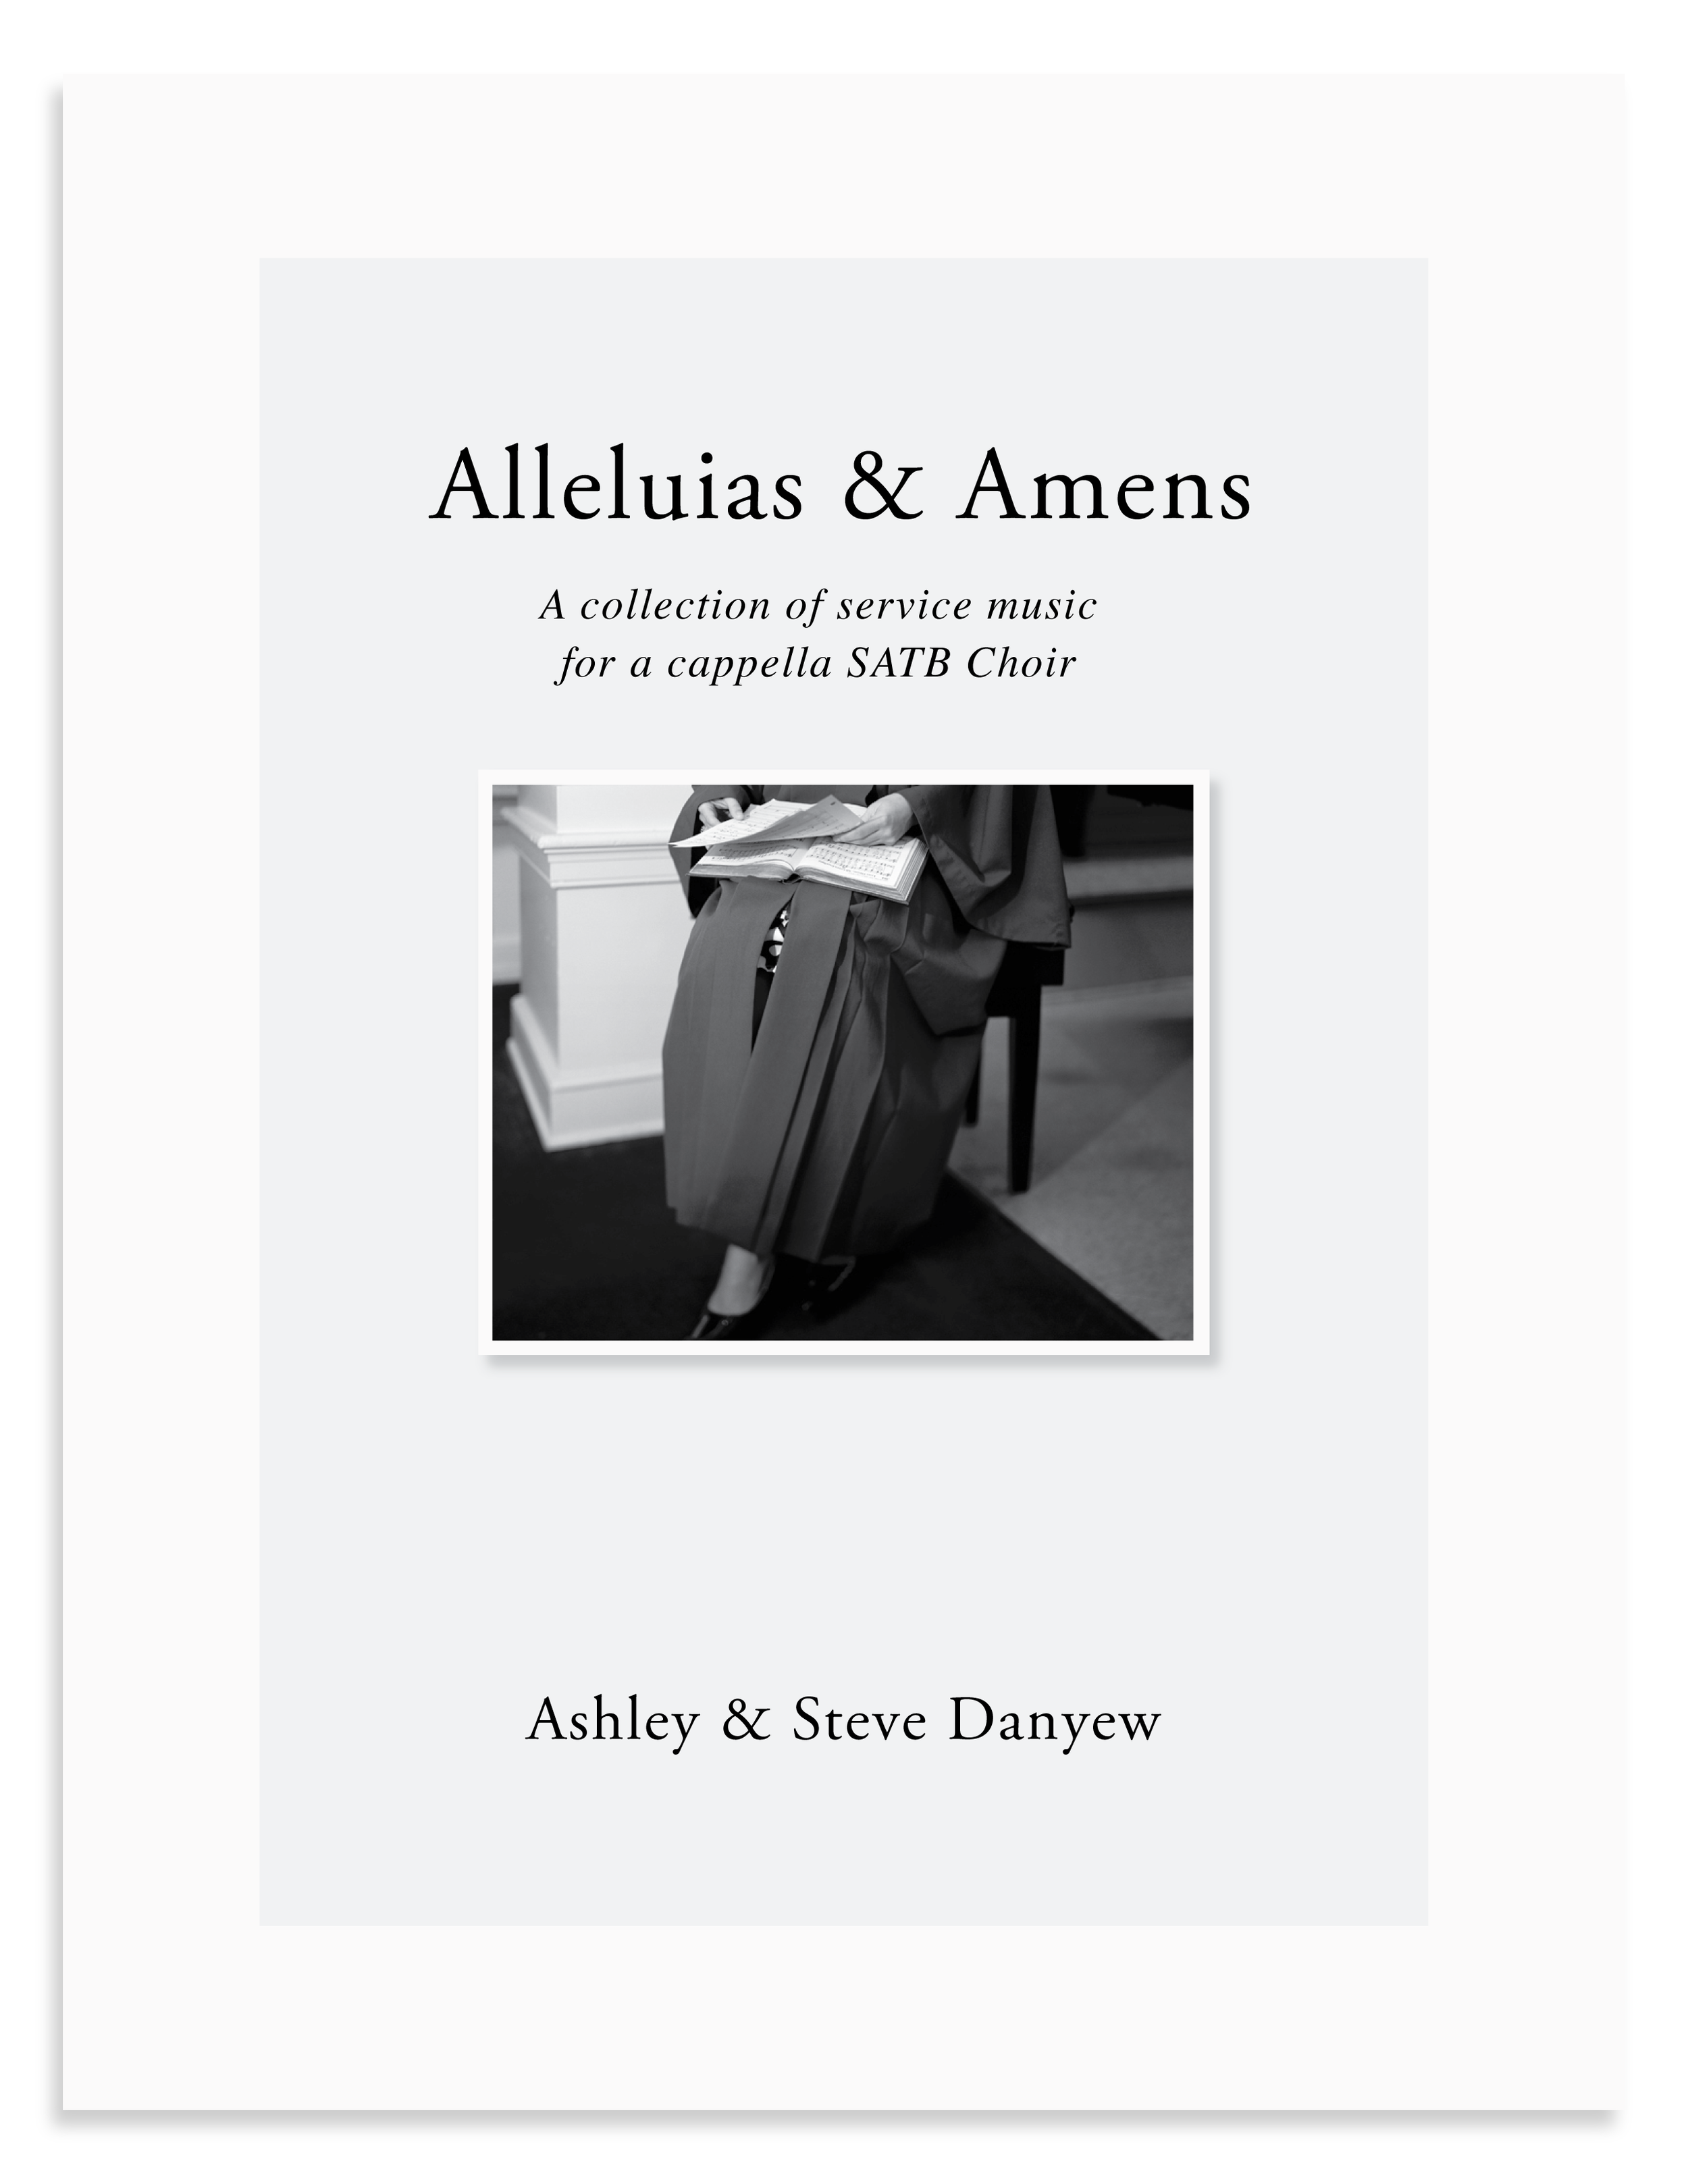 Songs for the Sanctuary: Alleluias & Amens by Ashley and Steve Danyew.png